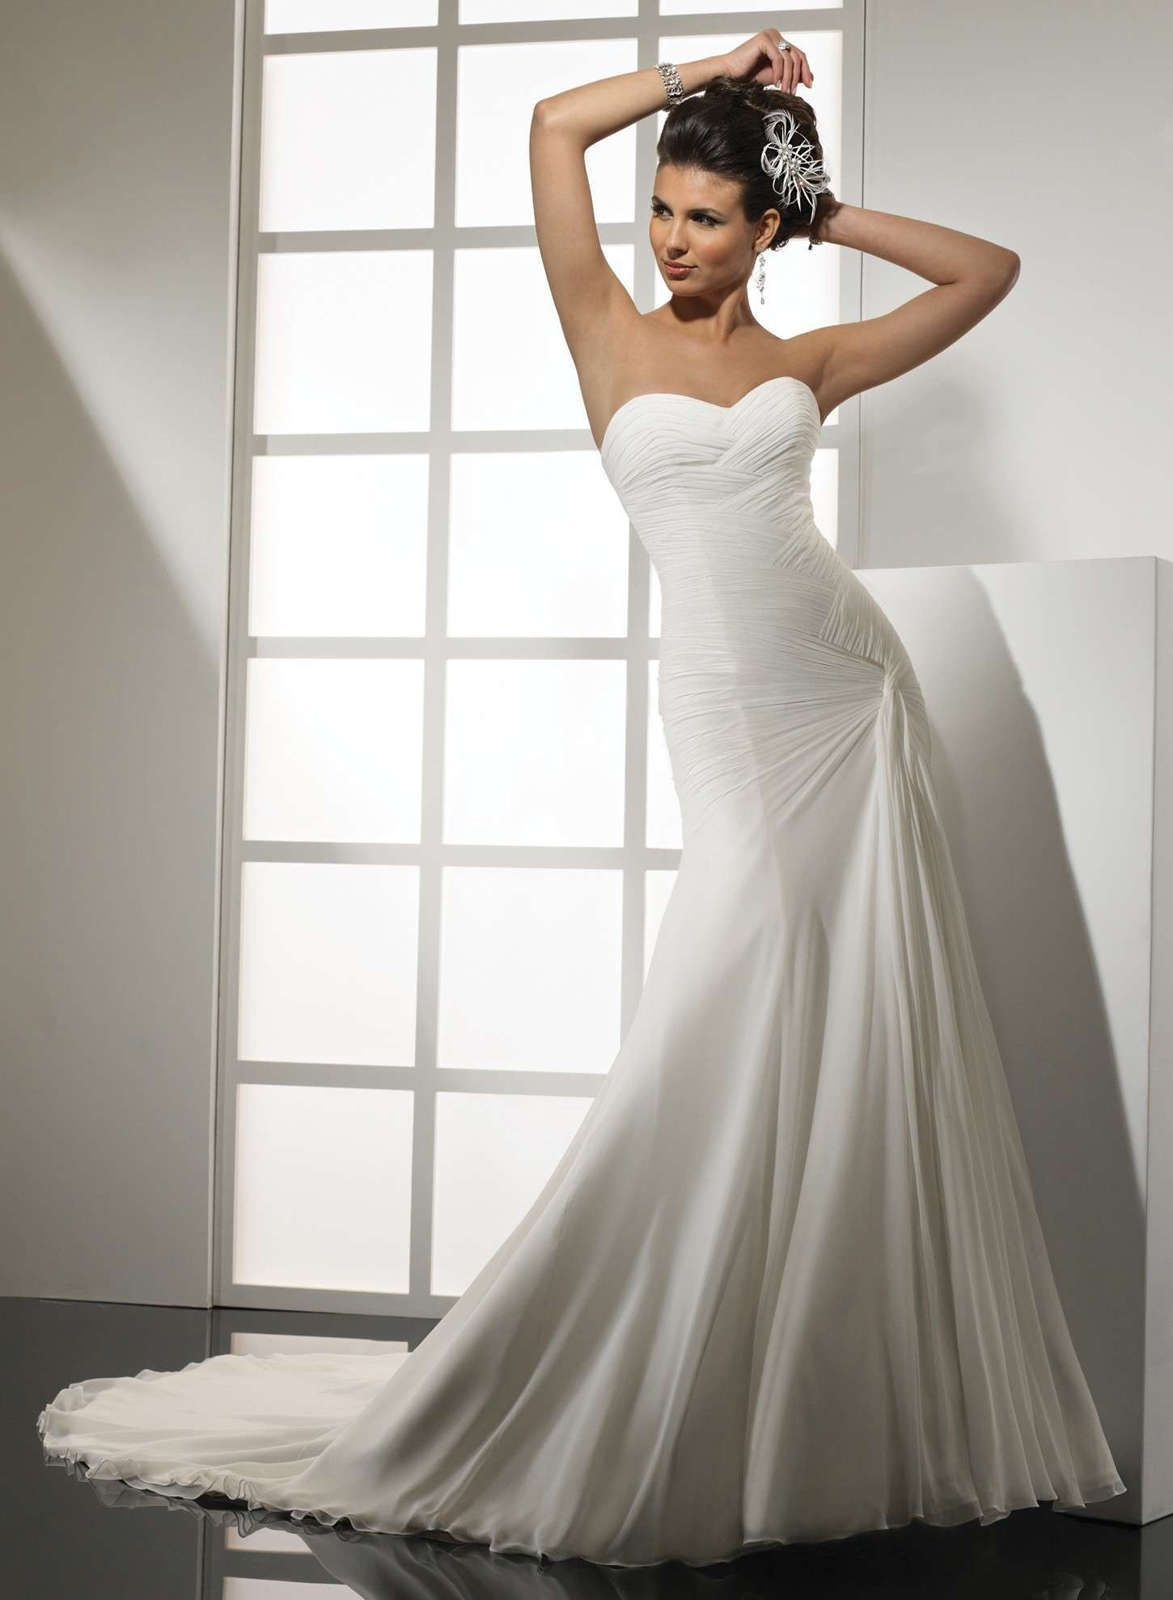 most popular wedding dresses Edith s Bridal and Tuxedo is home to one of Wisconsin s largest collections of bridal wear With top designers such as Mori Lee Maggie Sotterro and Allure